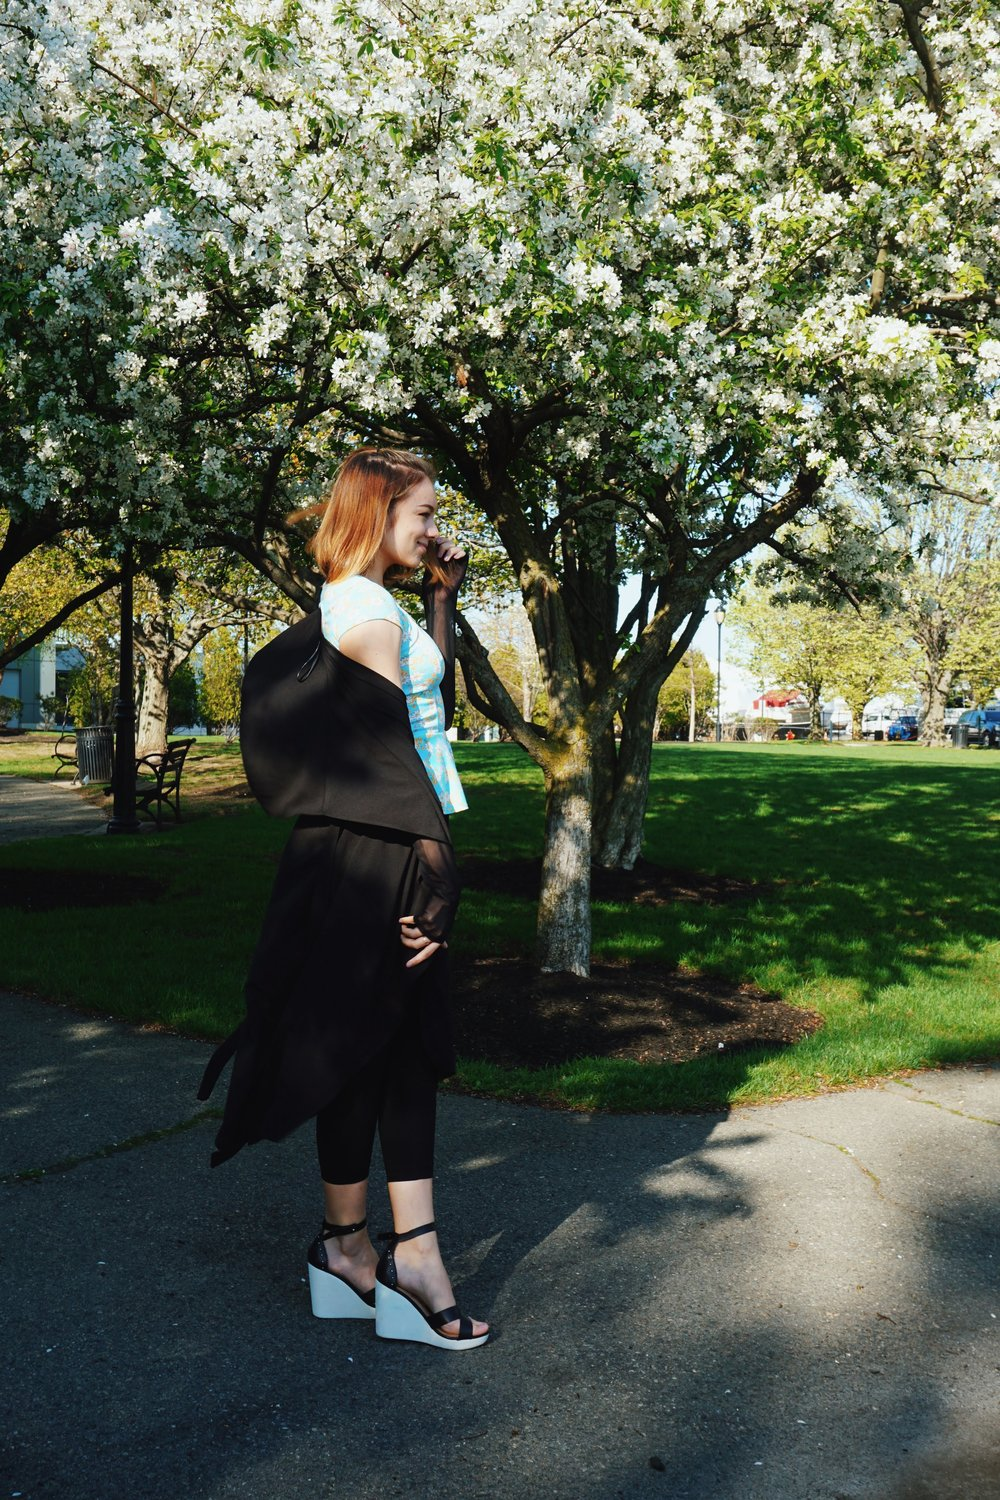 A side photo of a girl in the park, wearing a black duster, blue top, black capris, and black and white wedges.